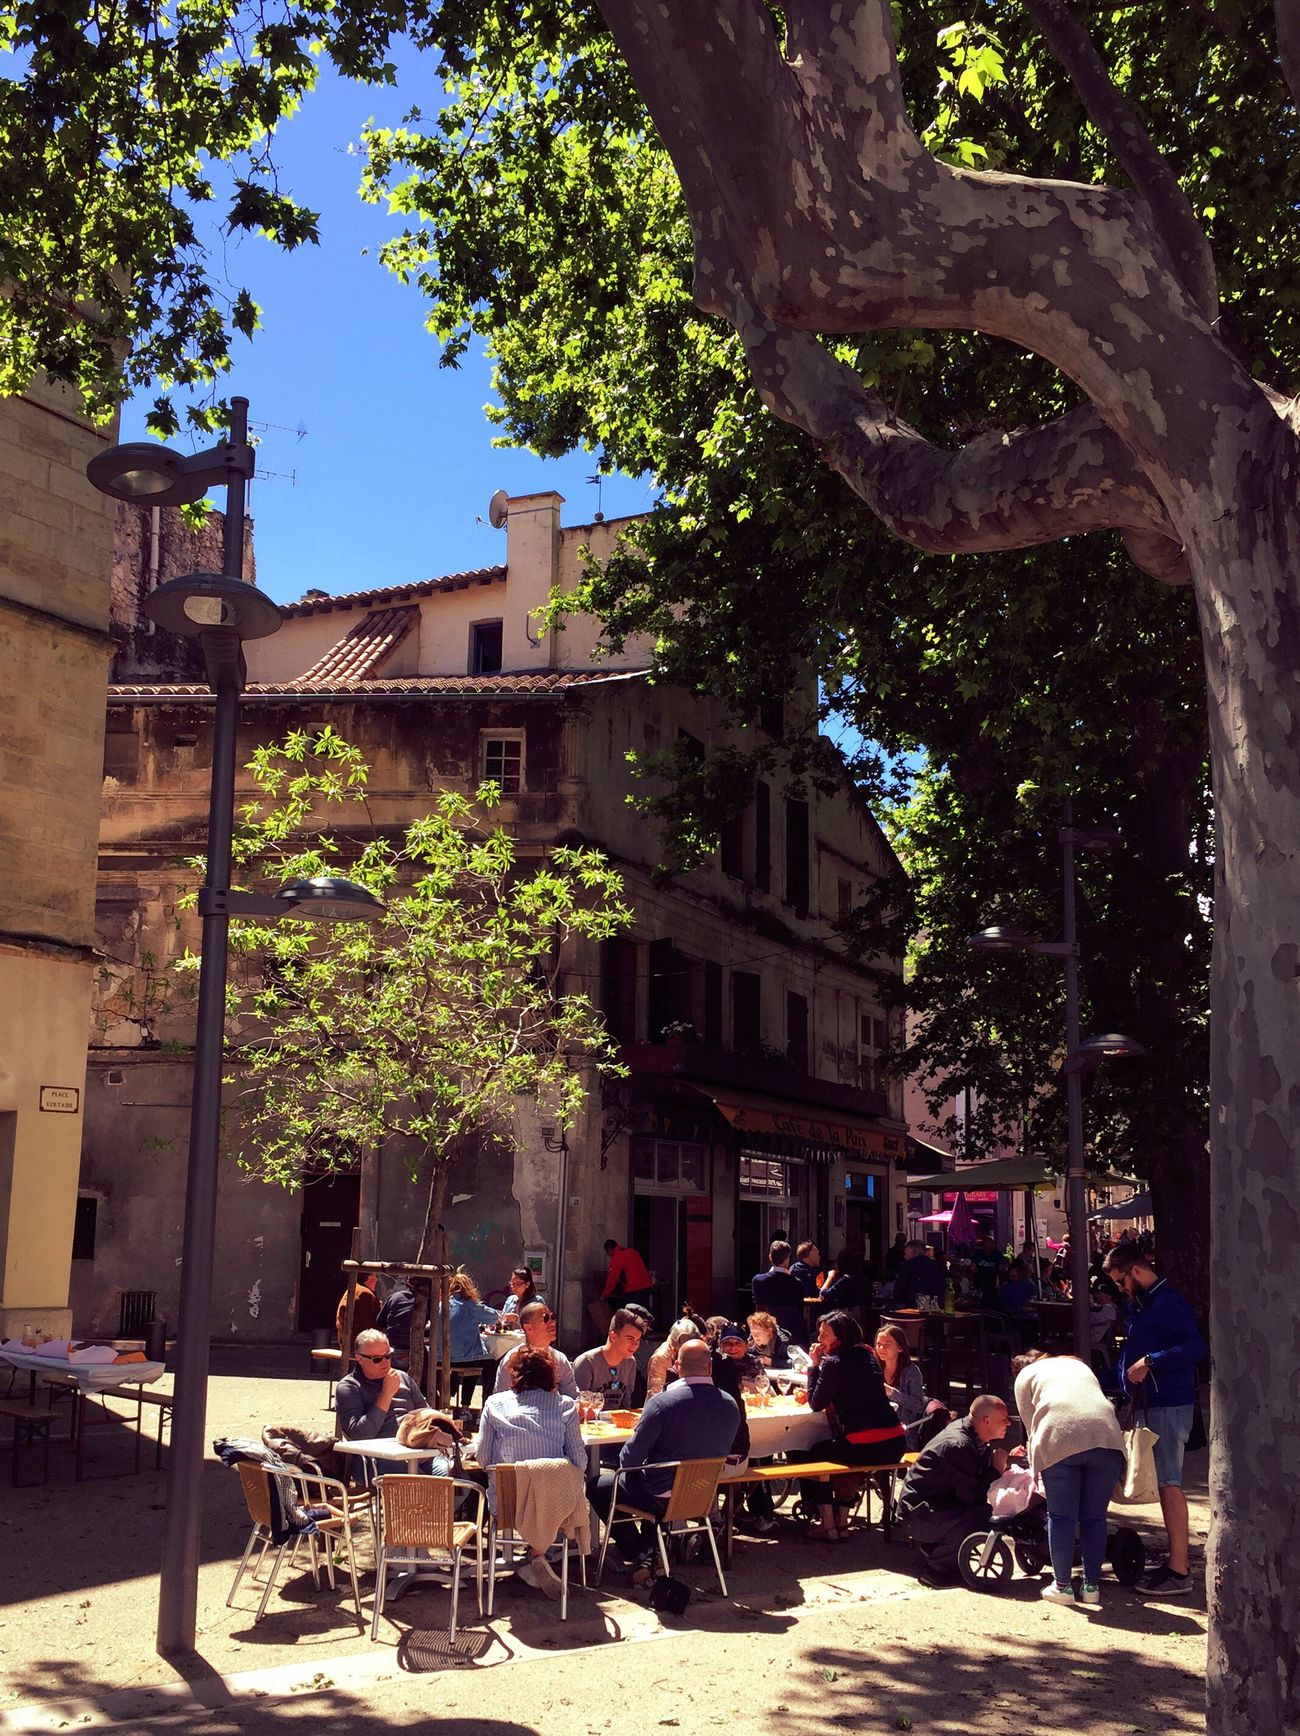 Arles Tree Building Exterior Architecture Table Outdoors Built Structure Day Cafe Large Group Of People People Sitting Sidewalk Cafe Togetherness City Friendship EyeEmNewHere France Provence